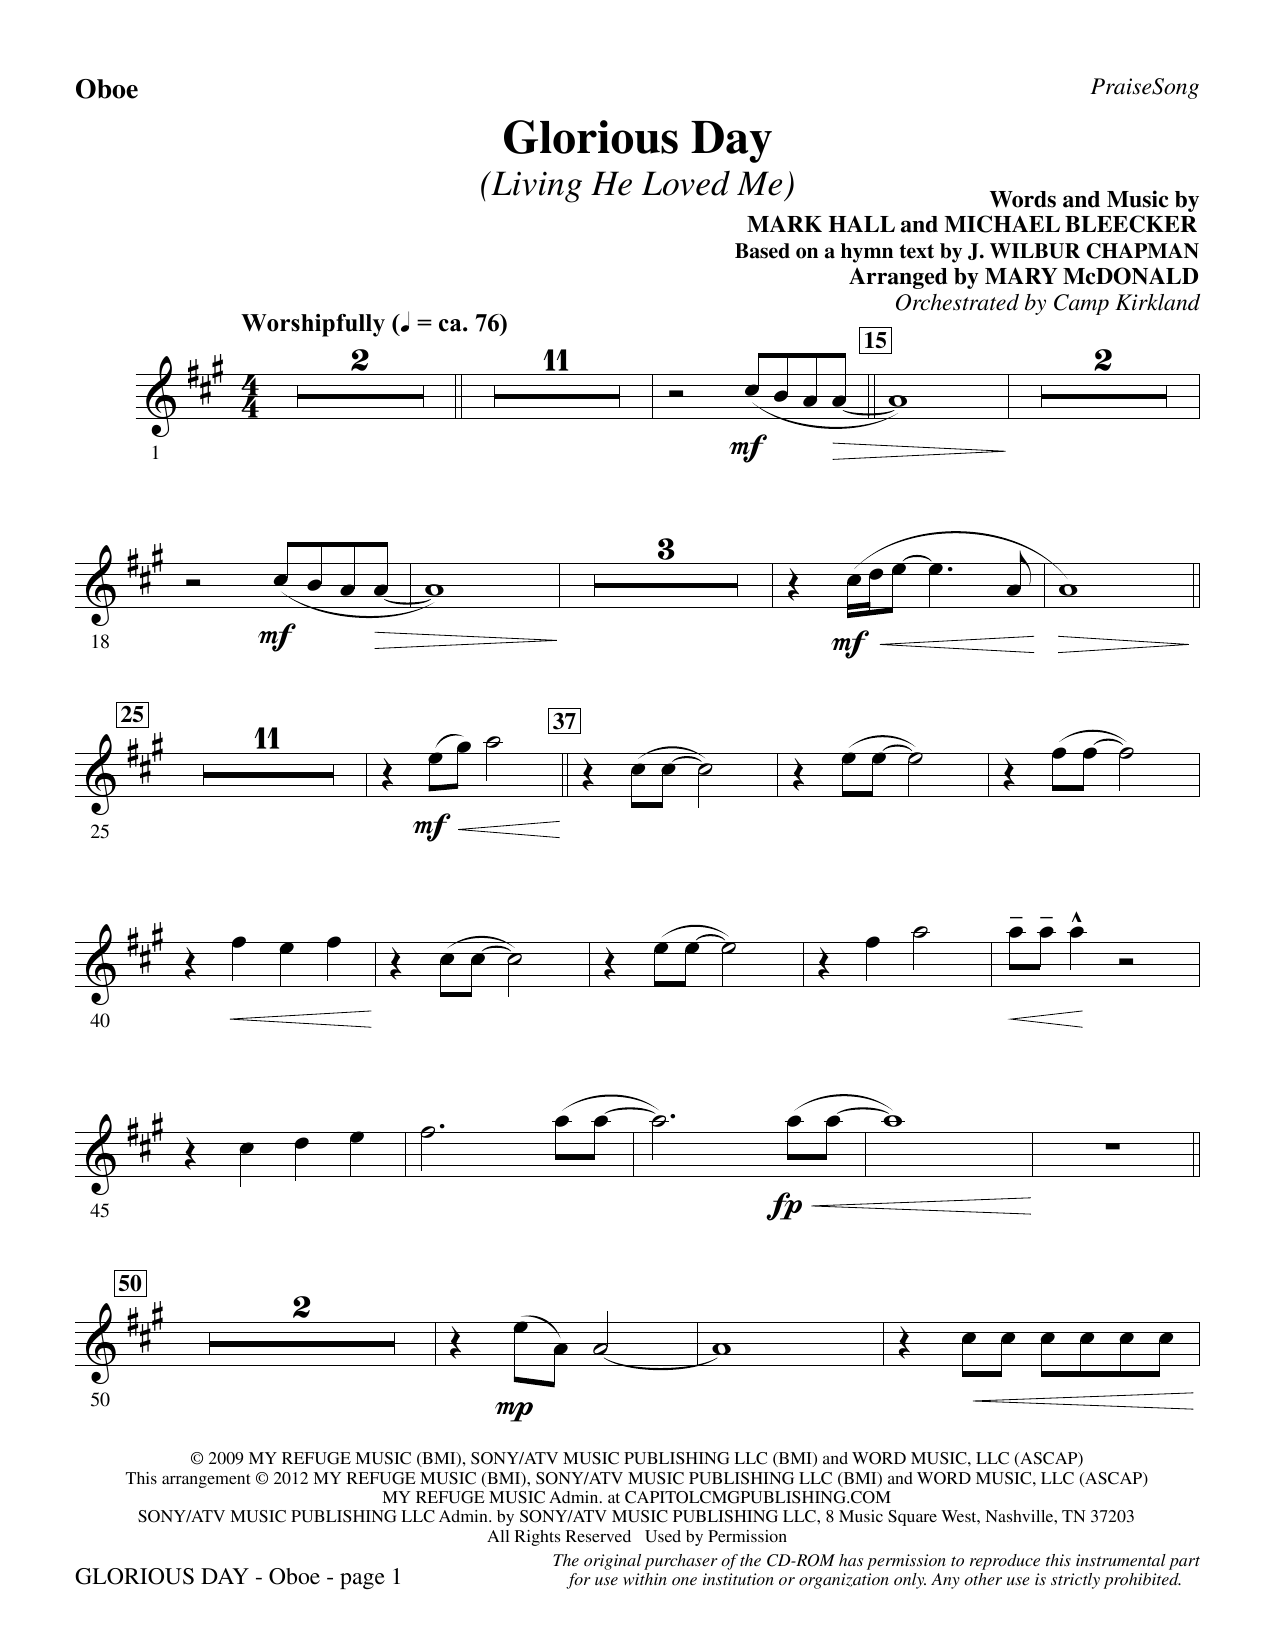 Glorious Day (Living He Loved Me) - Oboe Sheet Music